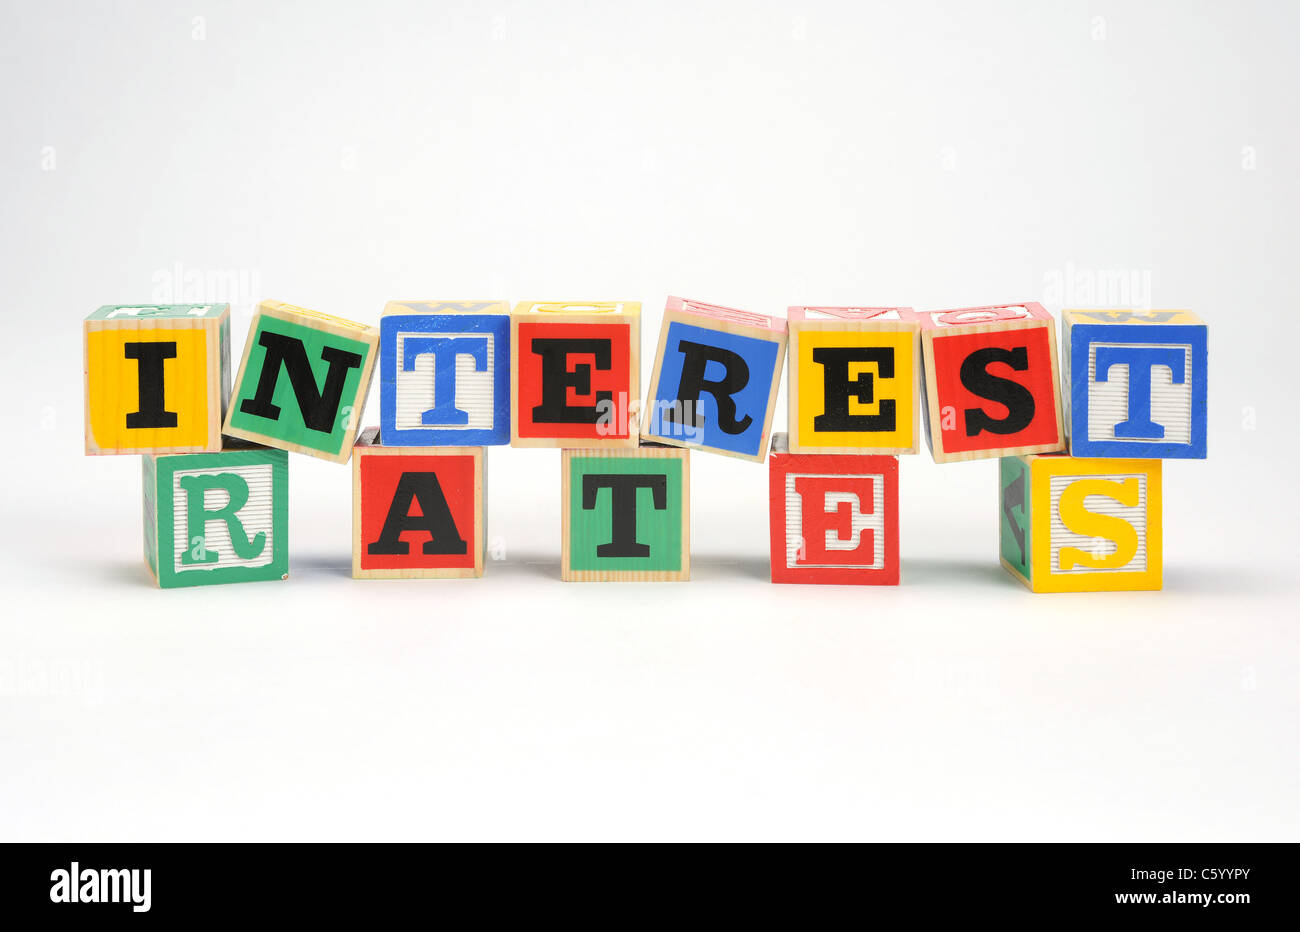 the words 'interest rates' spelled out with children's letter blocks - Stock Image